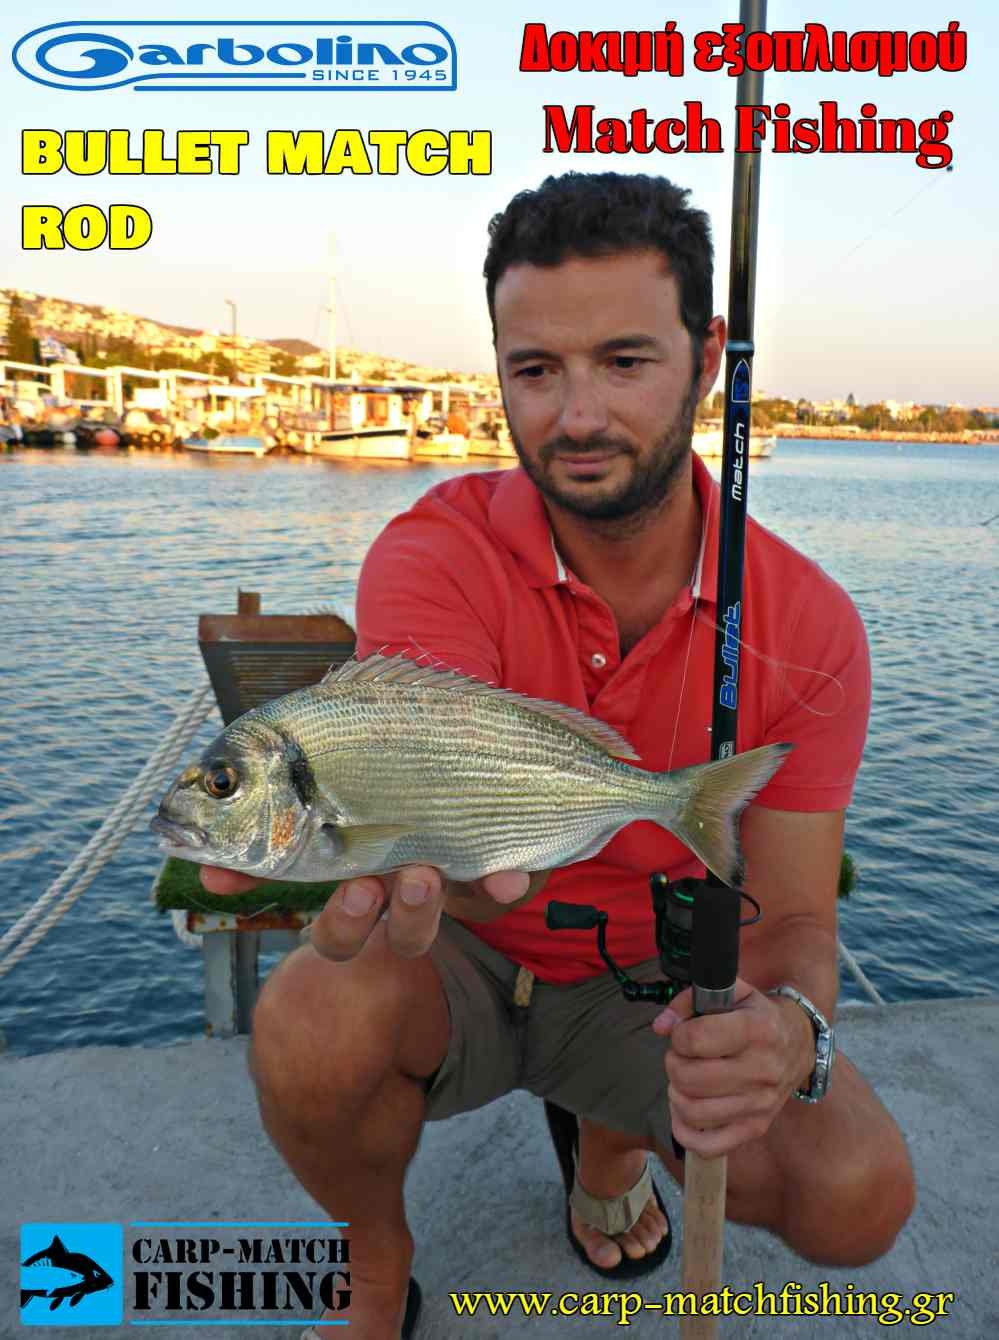 garbolino match rod psarema match dokimi carpmatchfishing